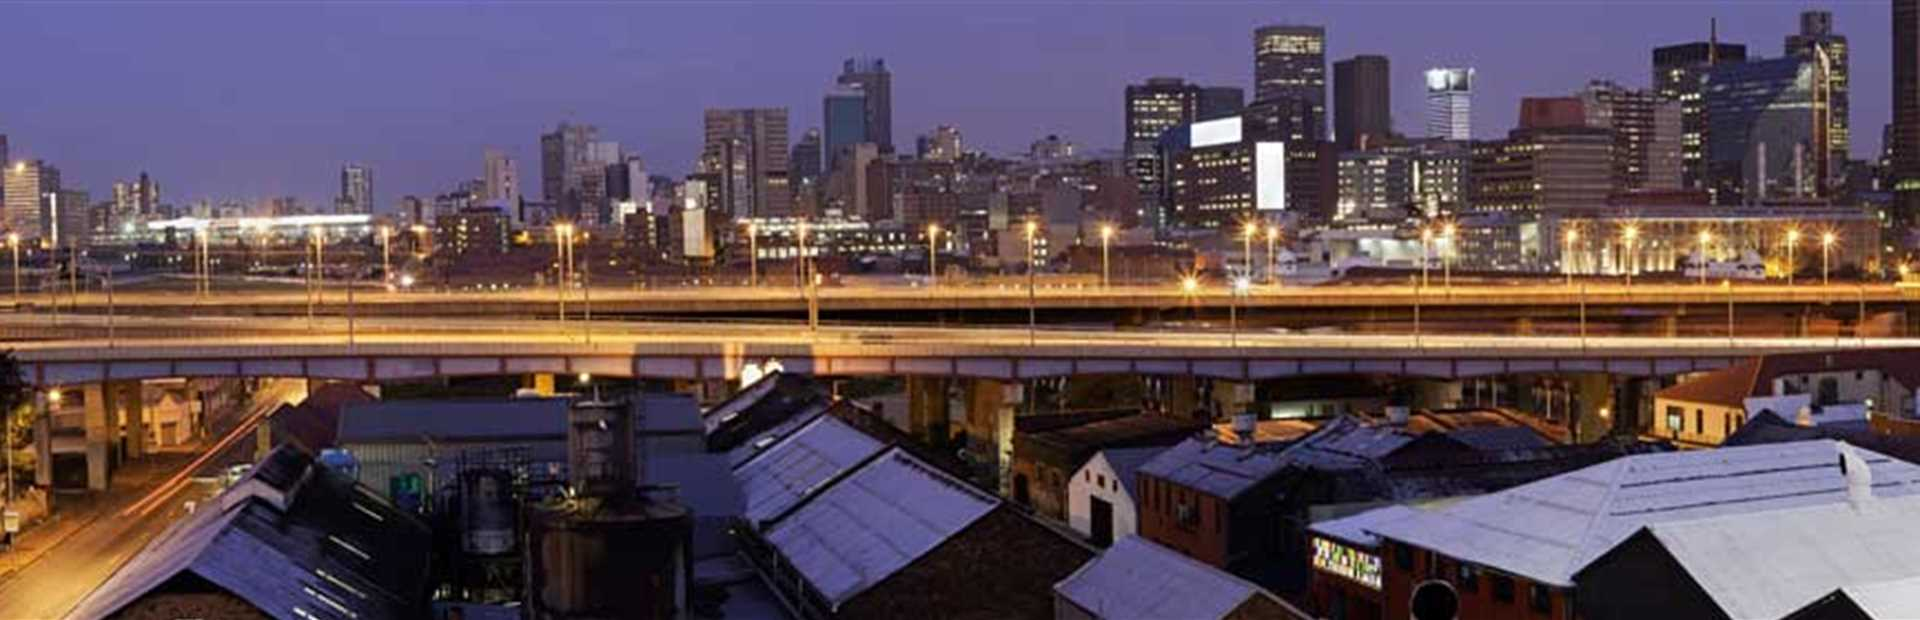 Johannesburg & Surrounds